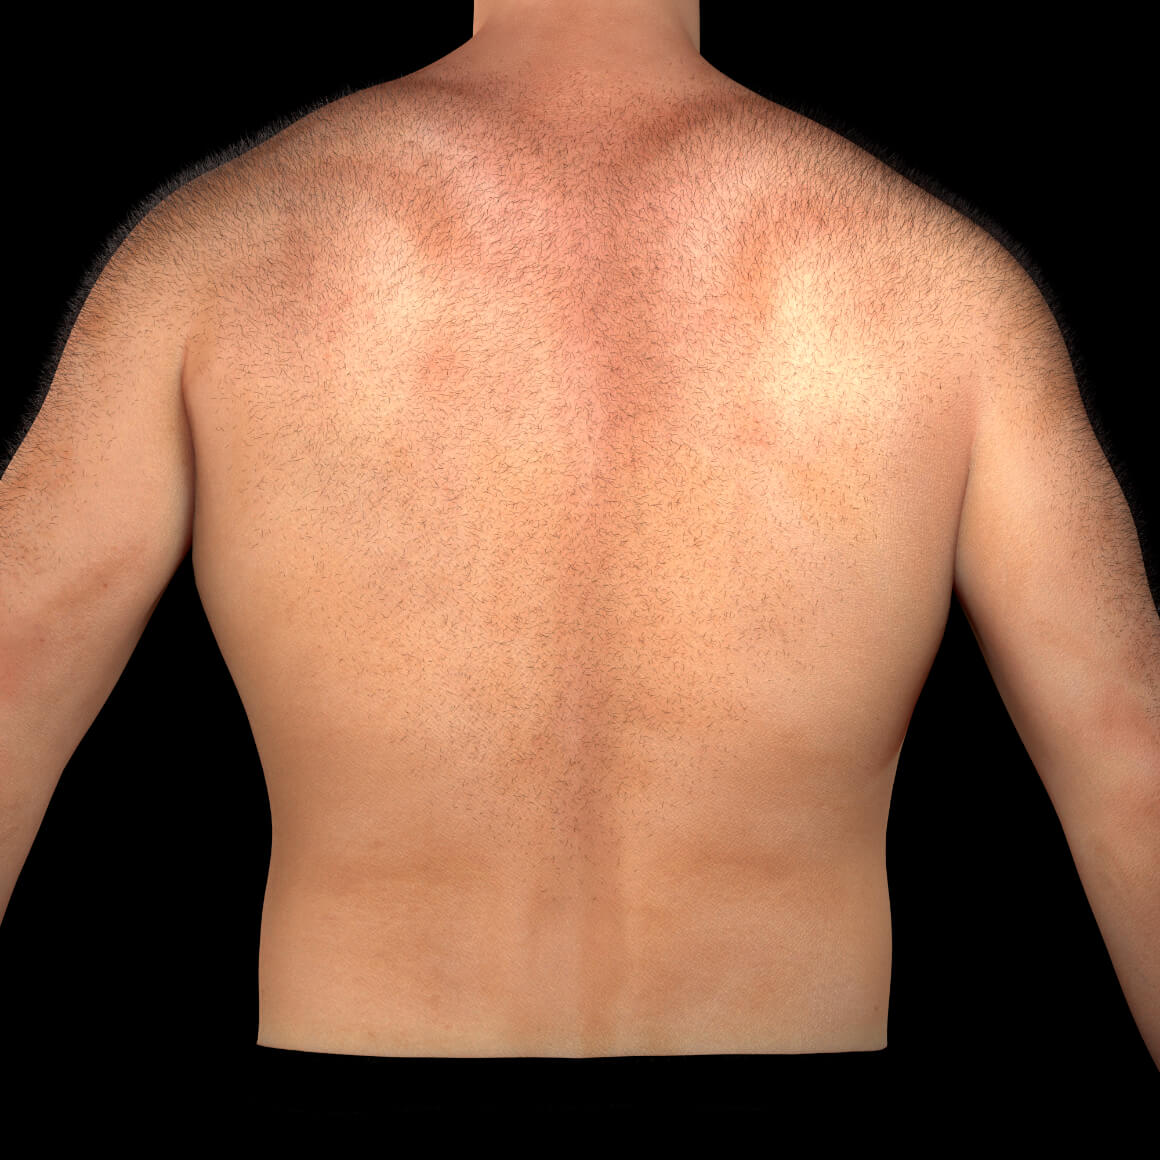 Back of a Clinique Chloé male patient covered with unwanted hair